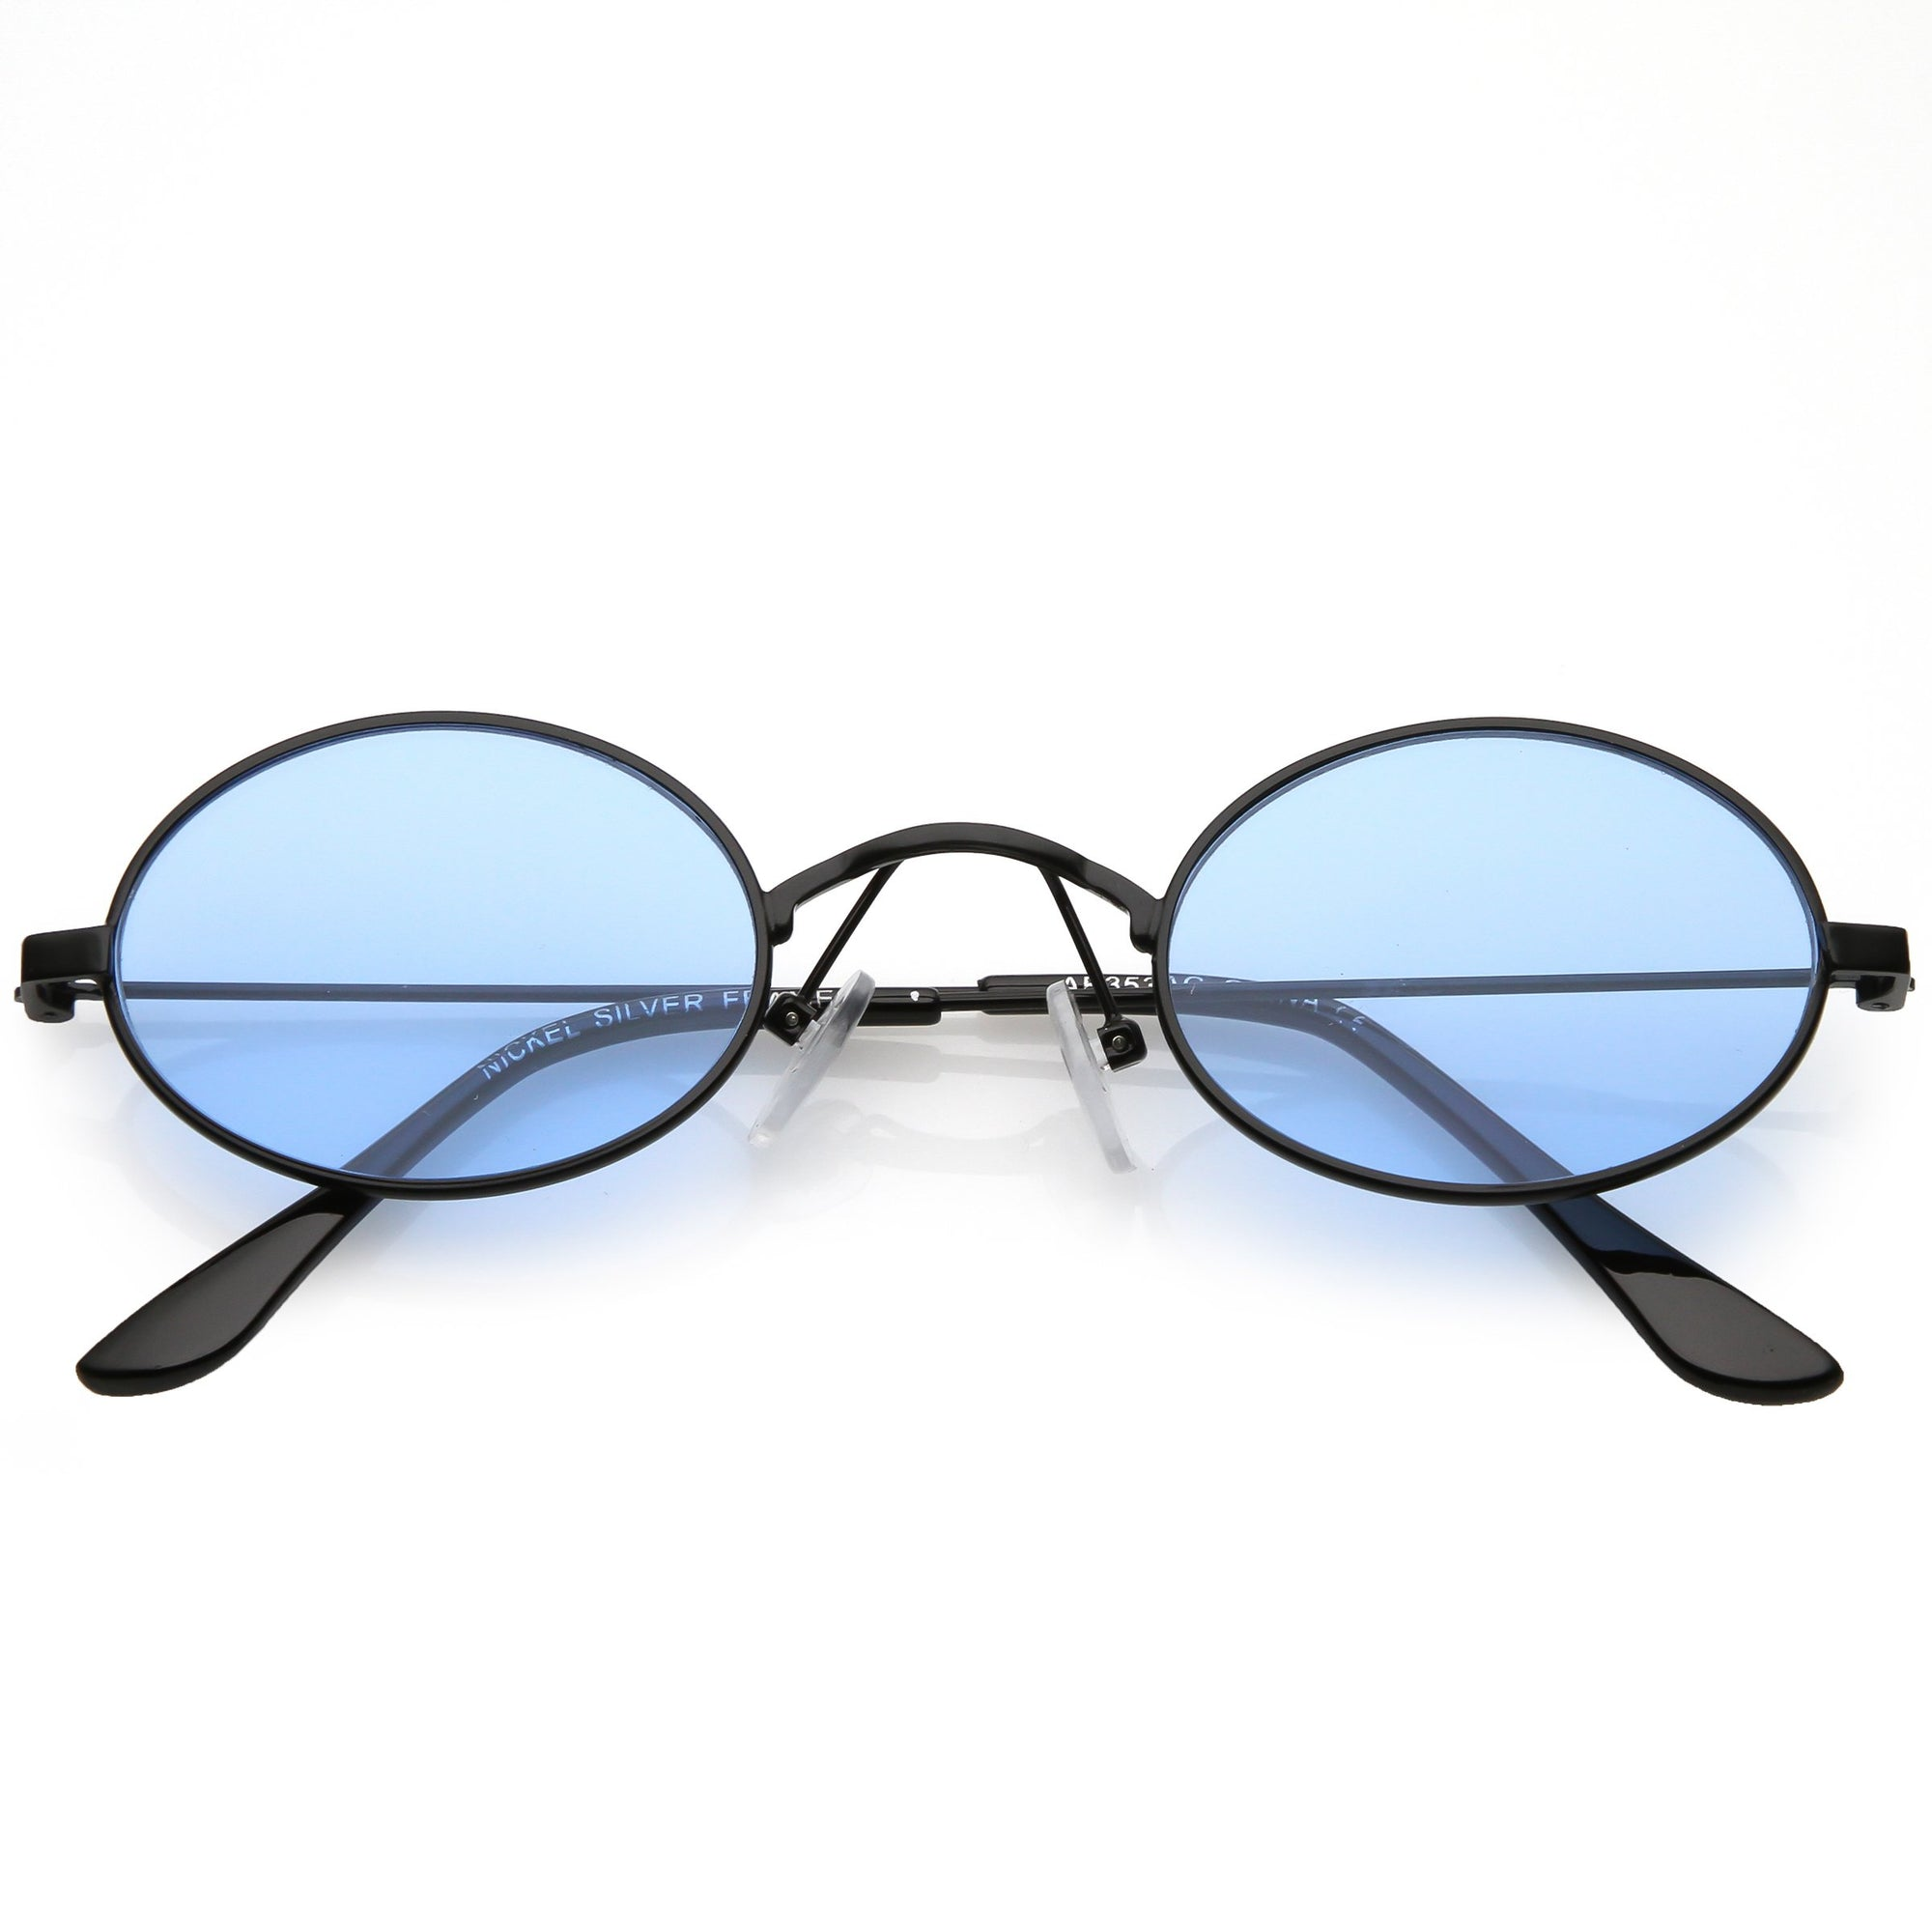 3efe753305 Trendy Round Fashion Sunglasses Tagged